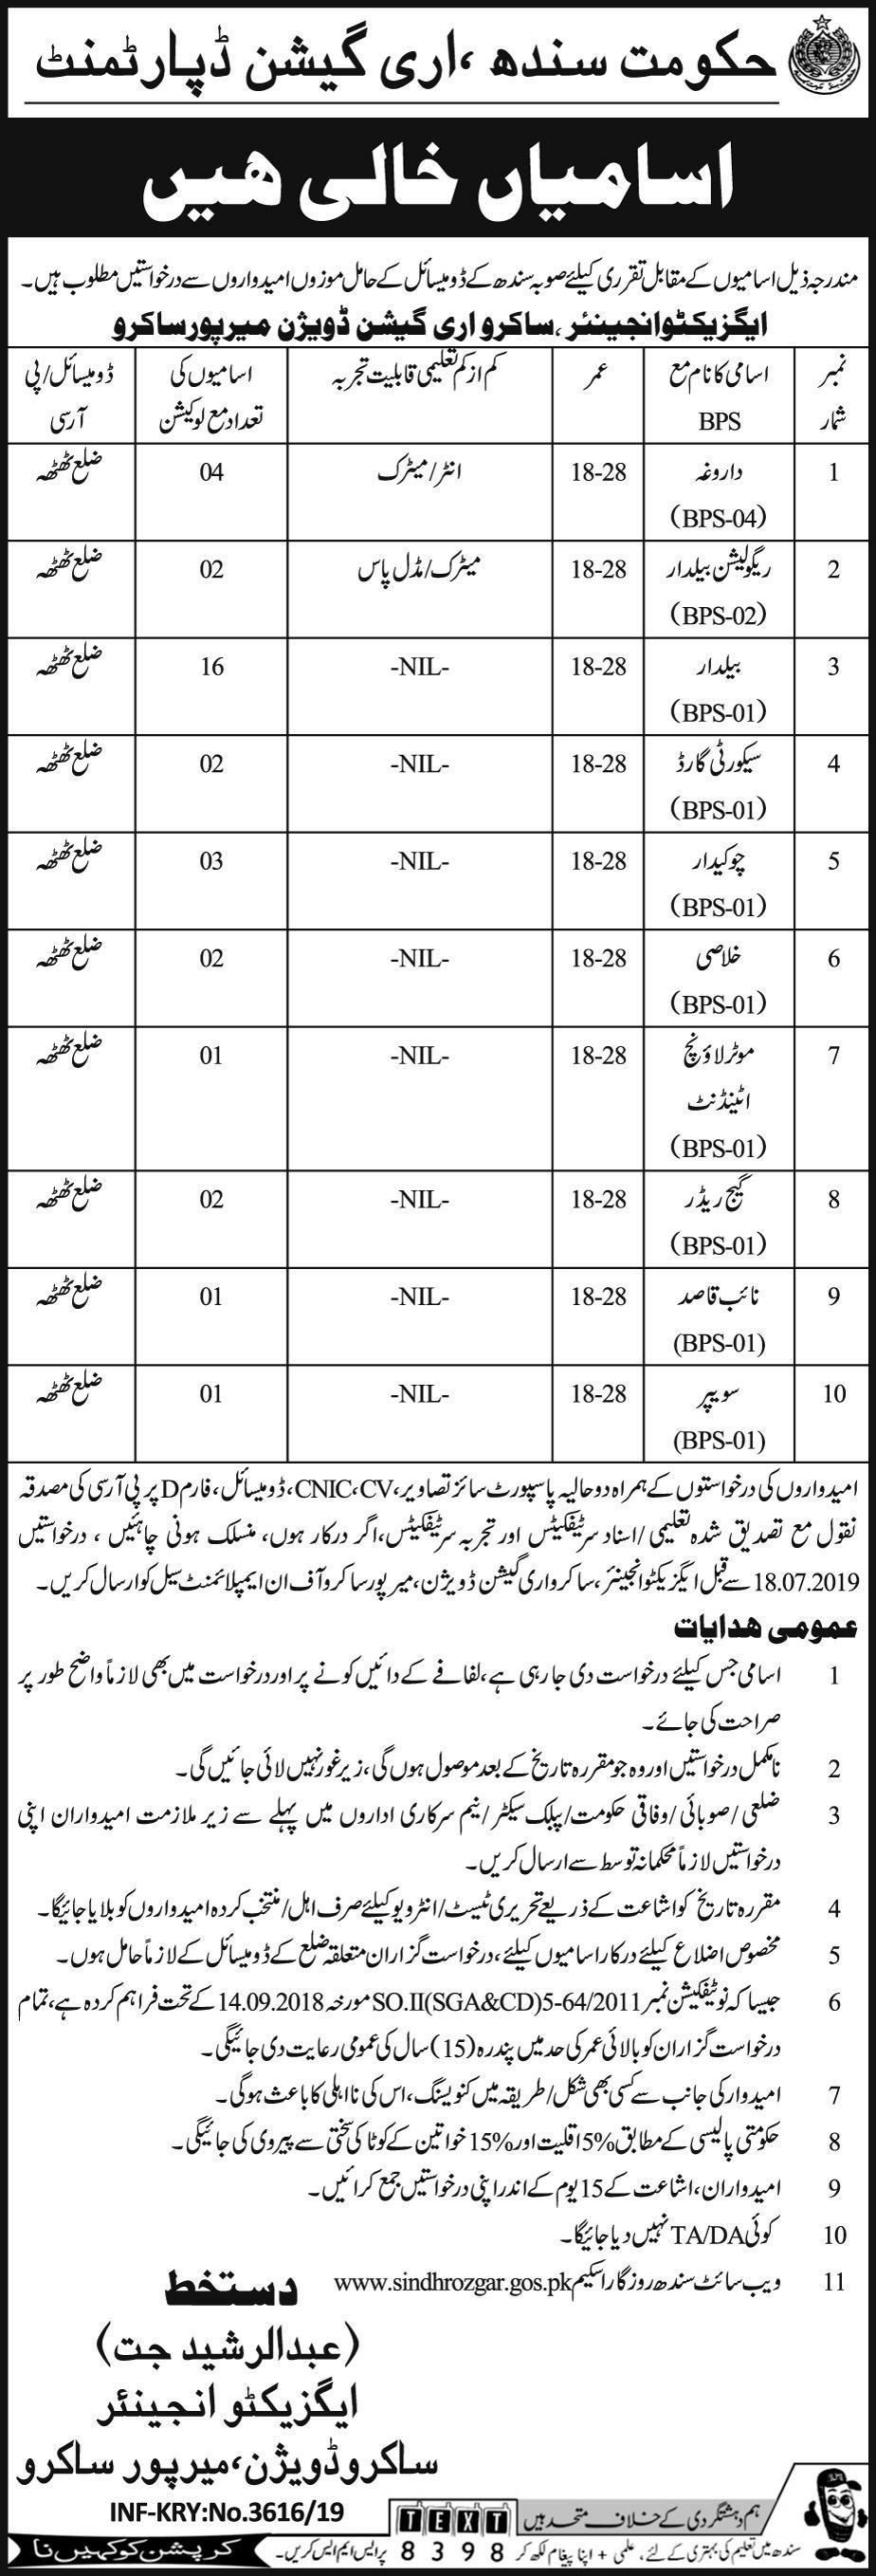 Government of Sindh Irrigation Department Jobs